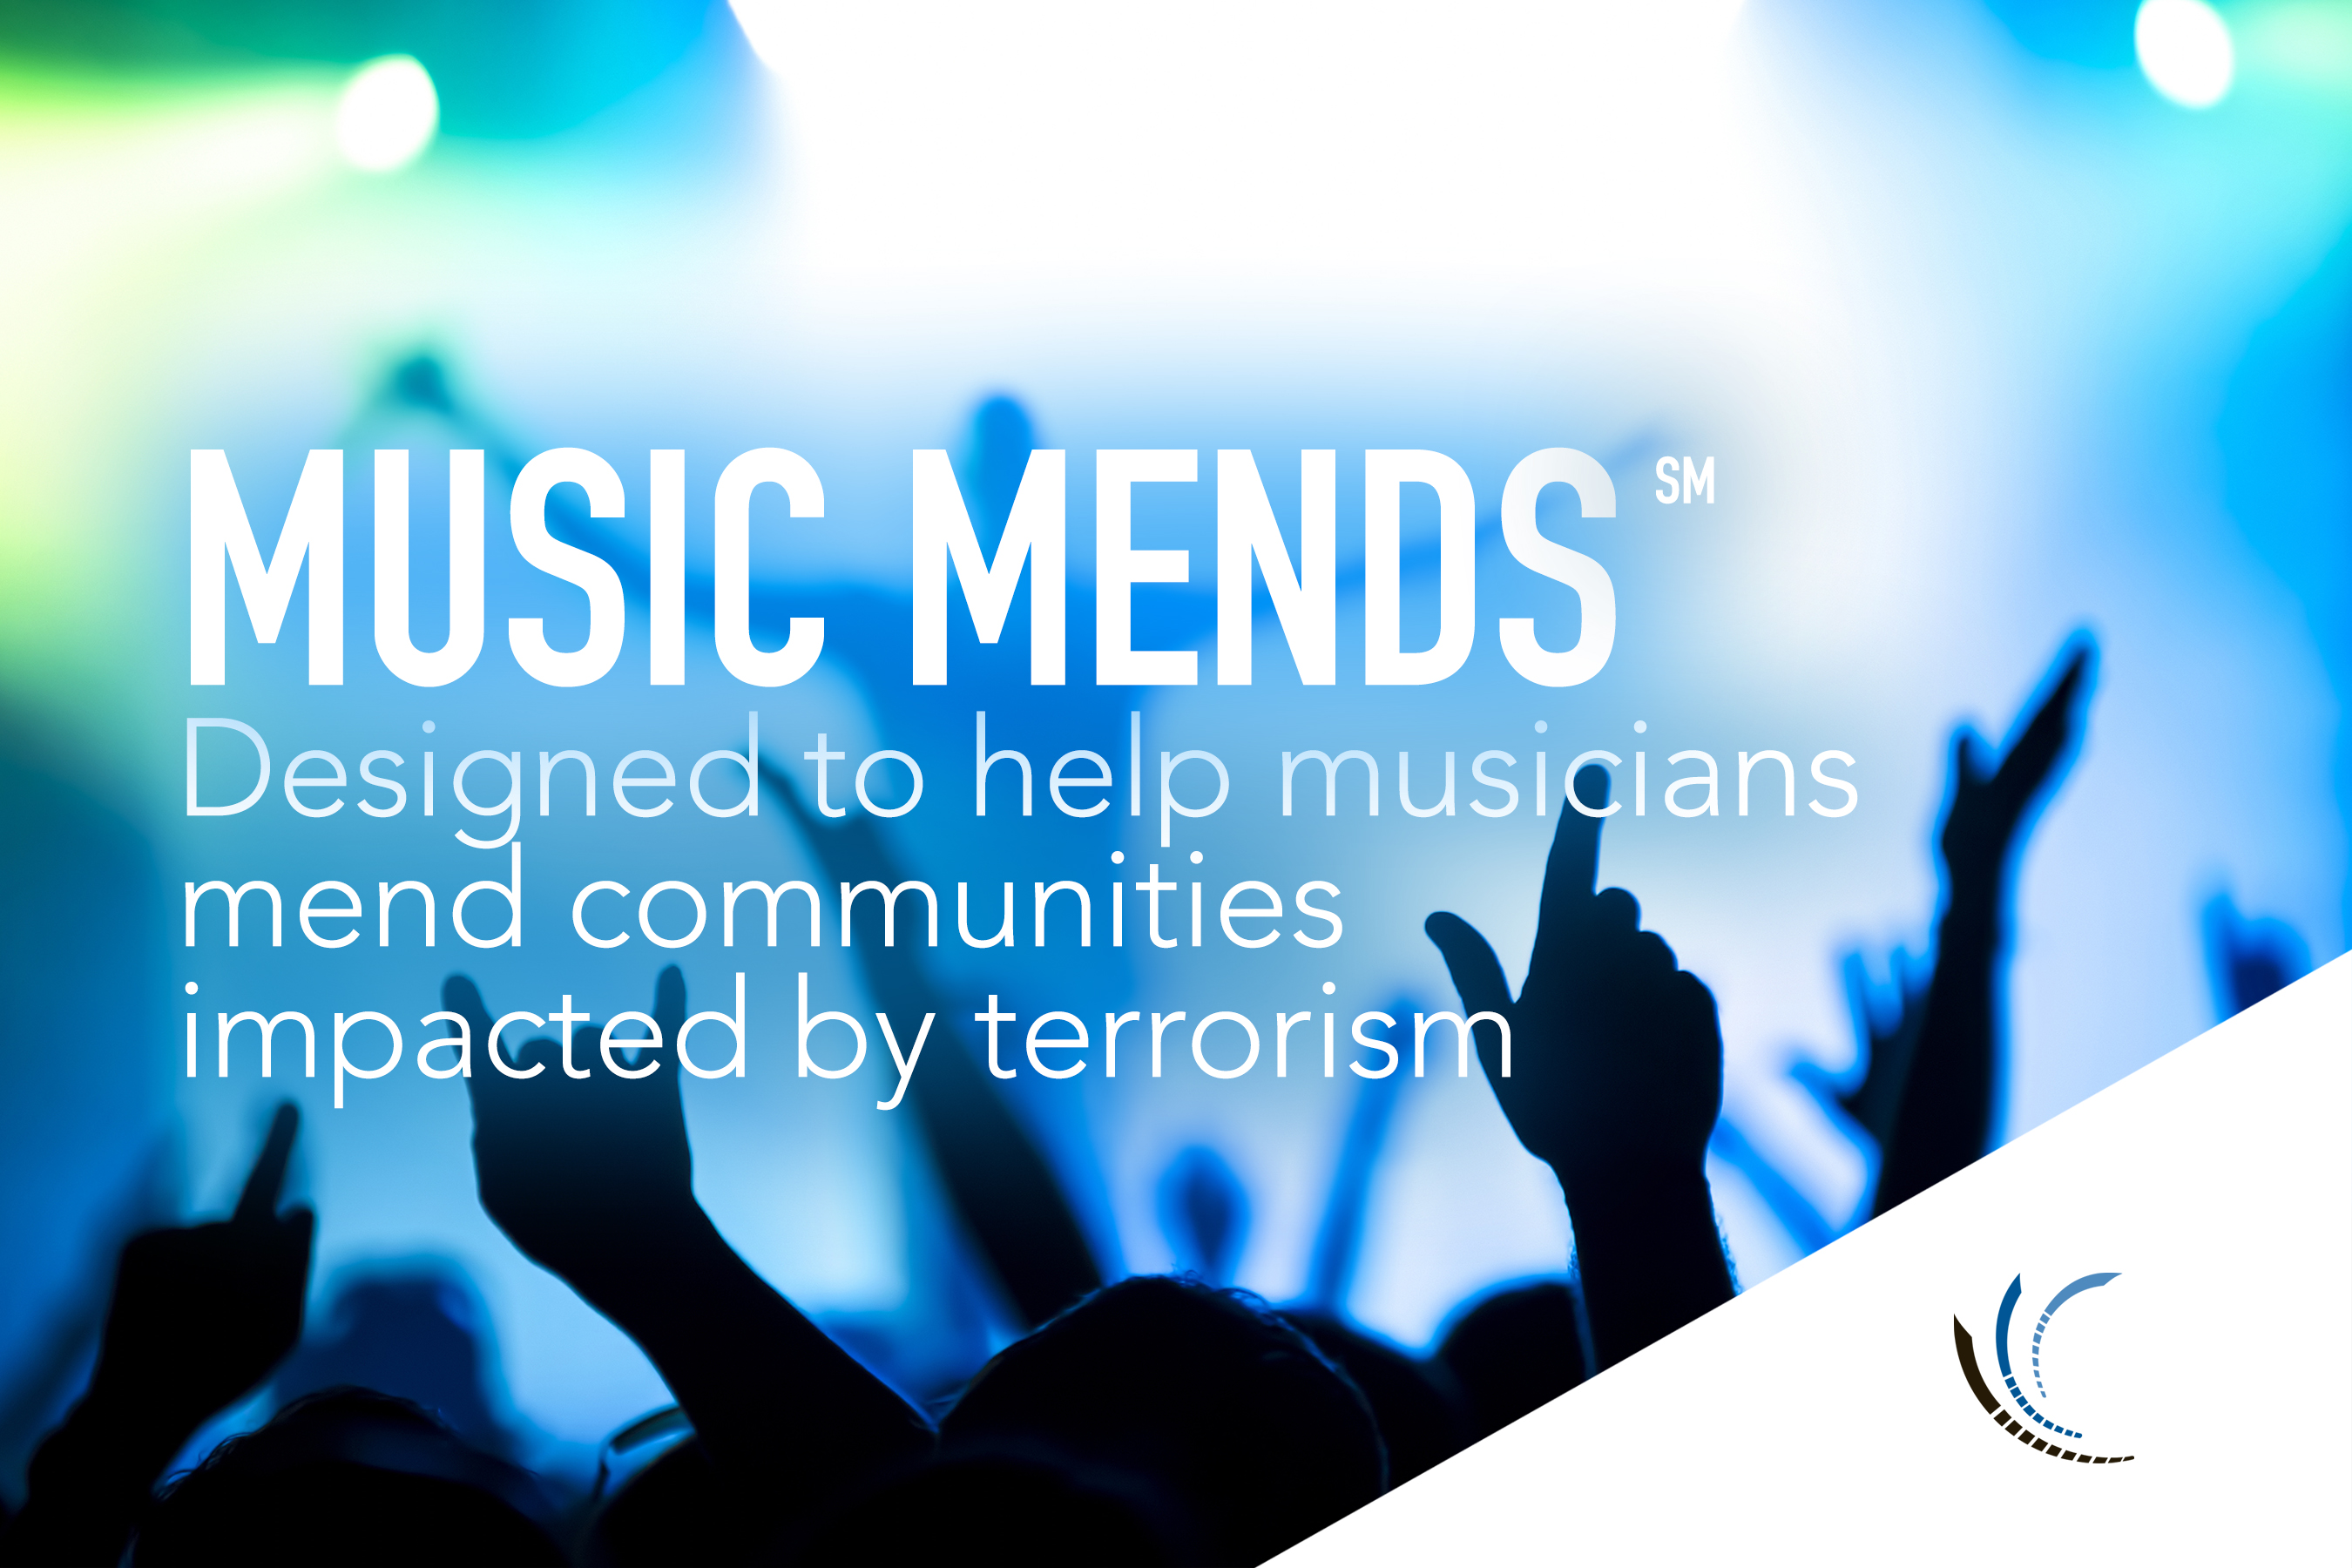 Music Mends enables touring artists to help mend communities impacted by terrorism